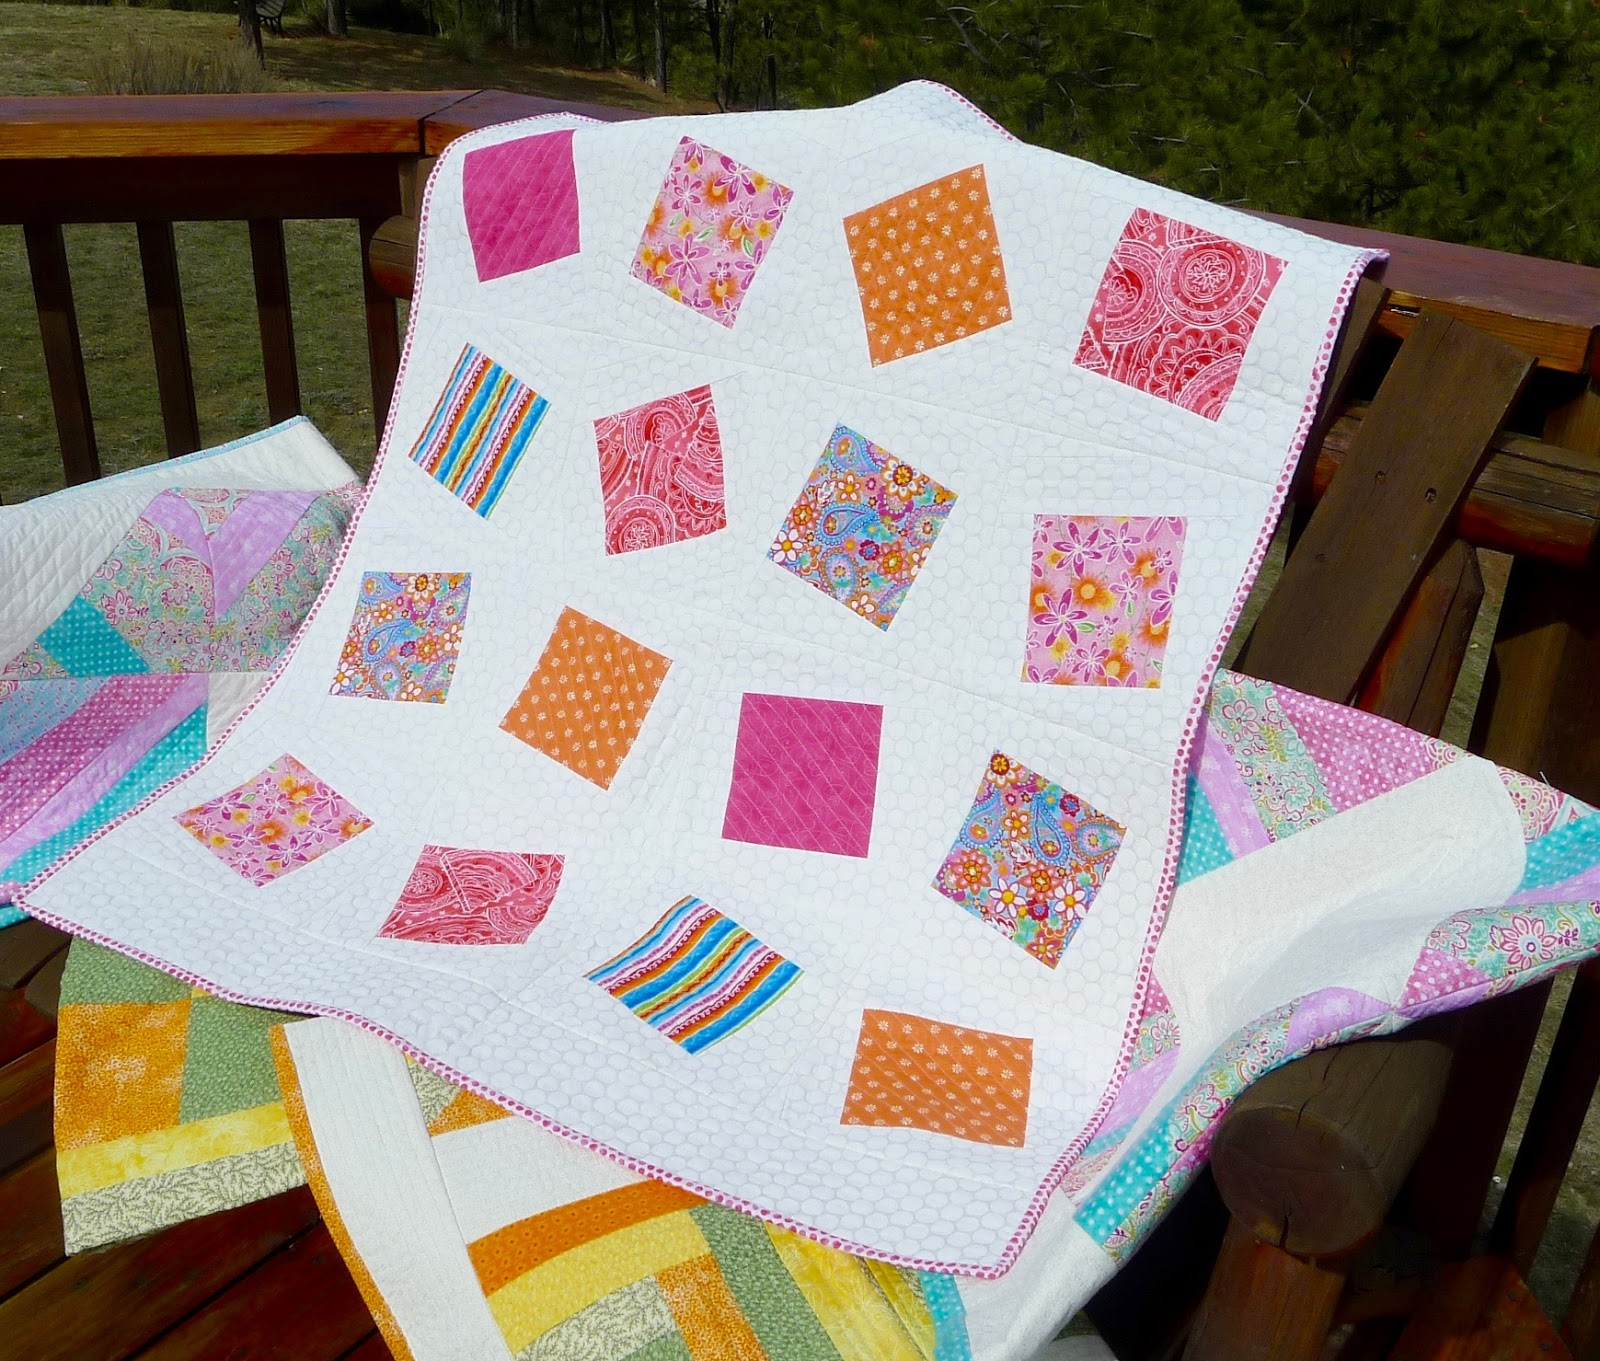 Quilt Knit Stitch 2017 : Emptyknitsters Never Ending Knitting: A quilt full of memories